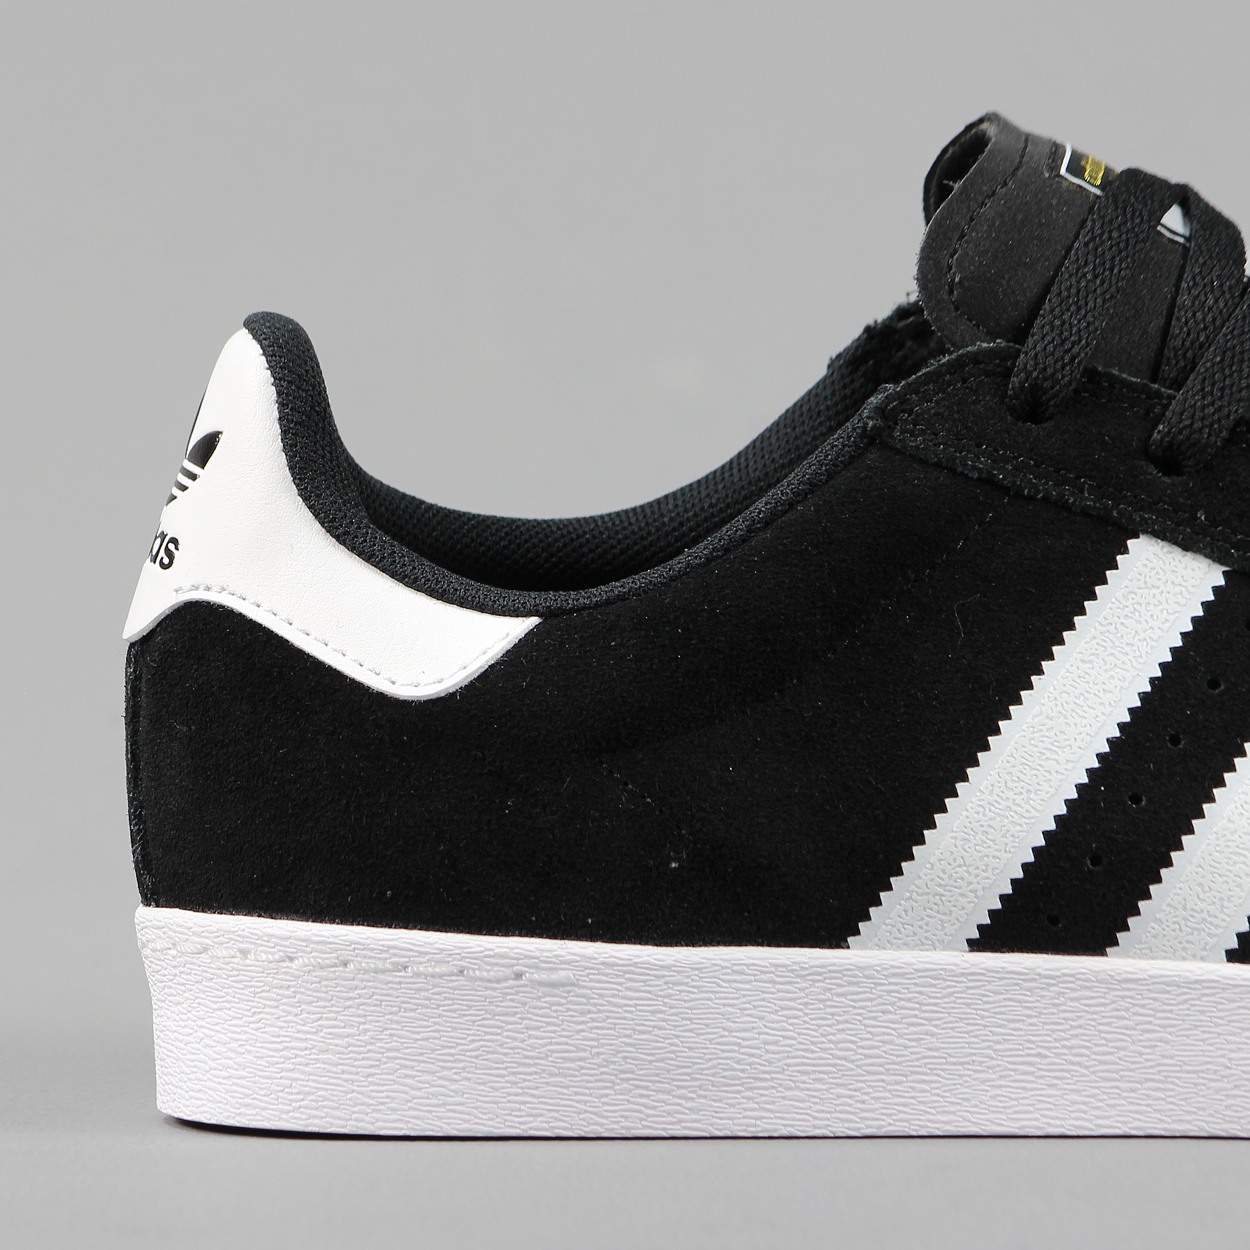 adidas superstar foundation shoes black and white